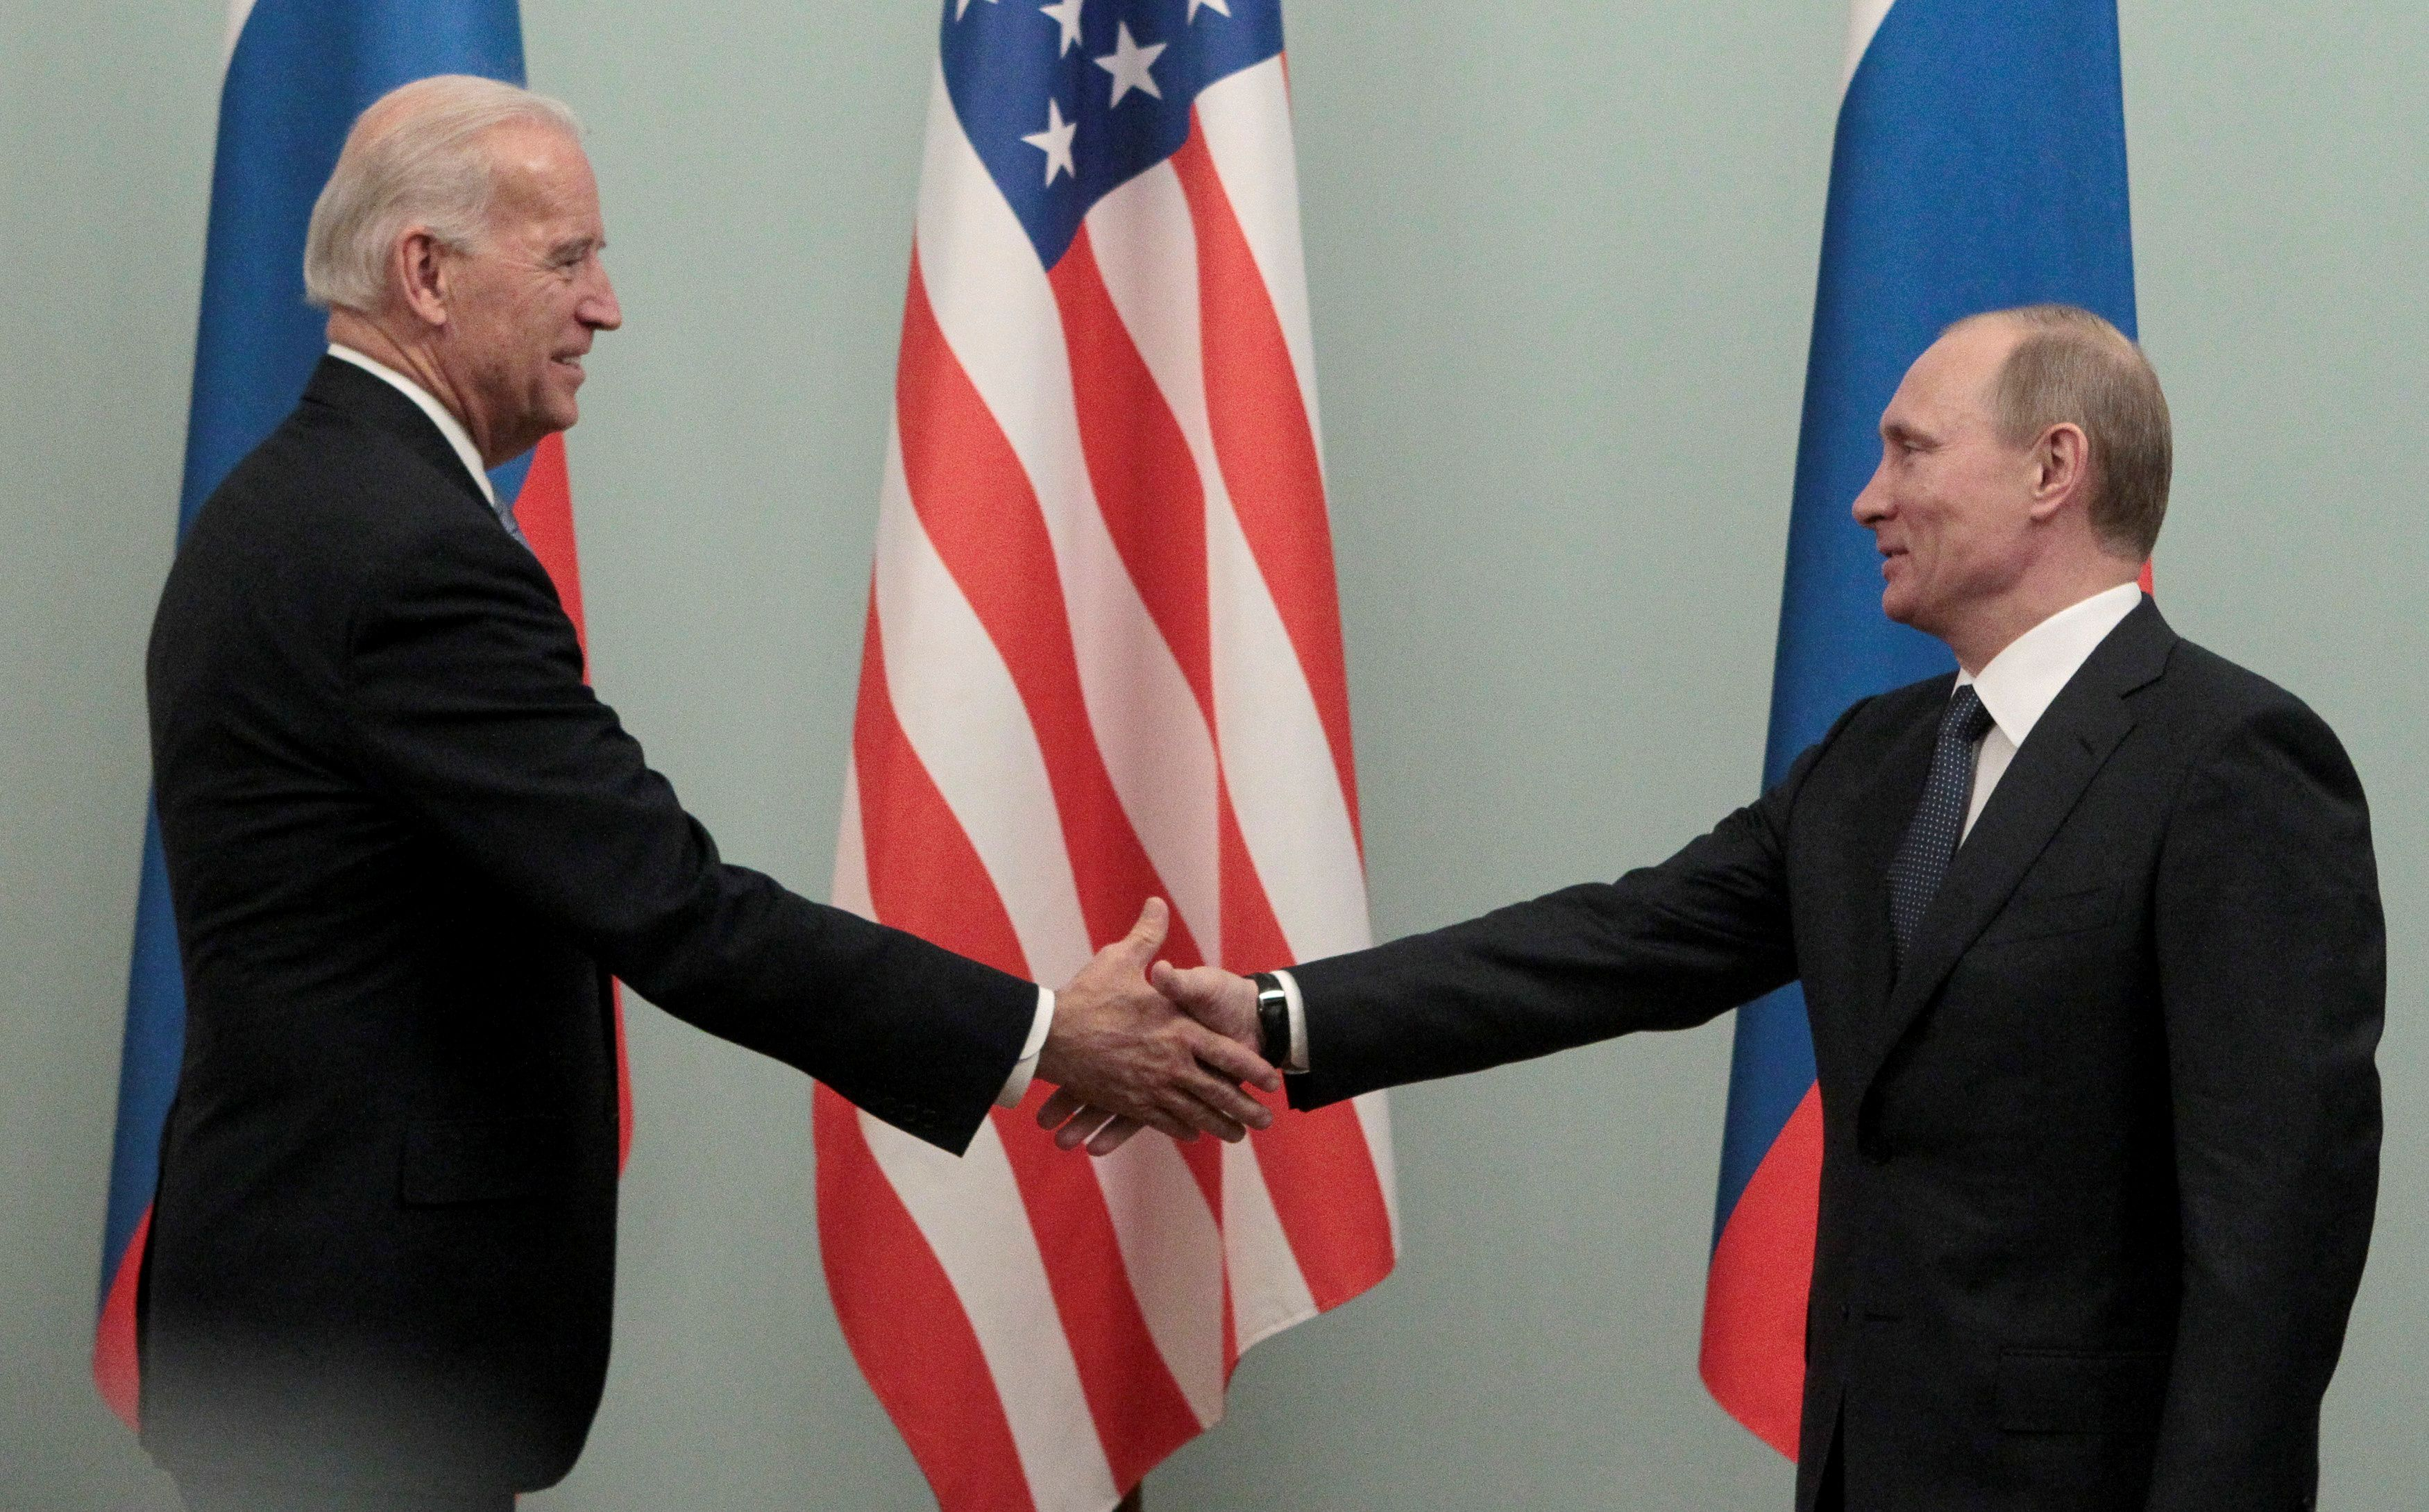 Russian Prime Minister Vladimir Putin (R) shakes hands with U.S. Vice President Joe Biden during their meeting in Moscow March 10, 2011. REUTERS/Alexander Natruskin/File Photo